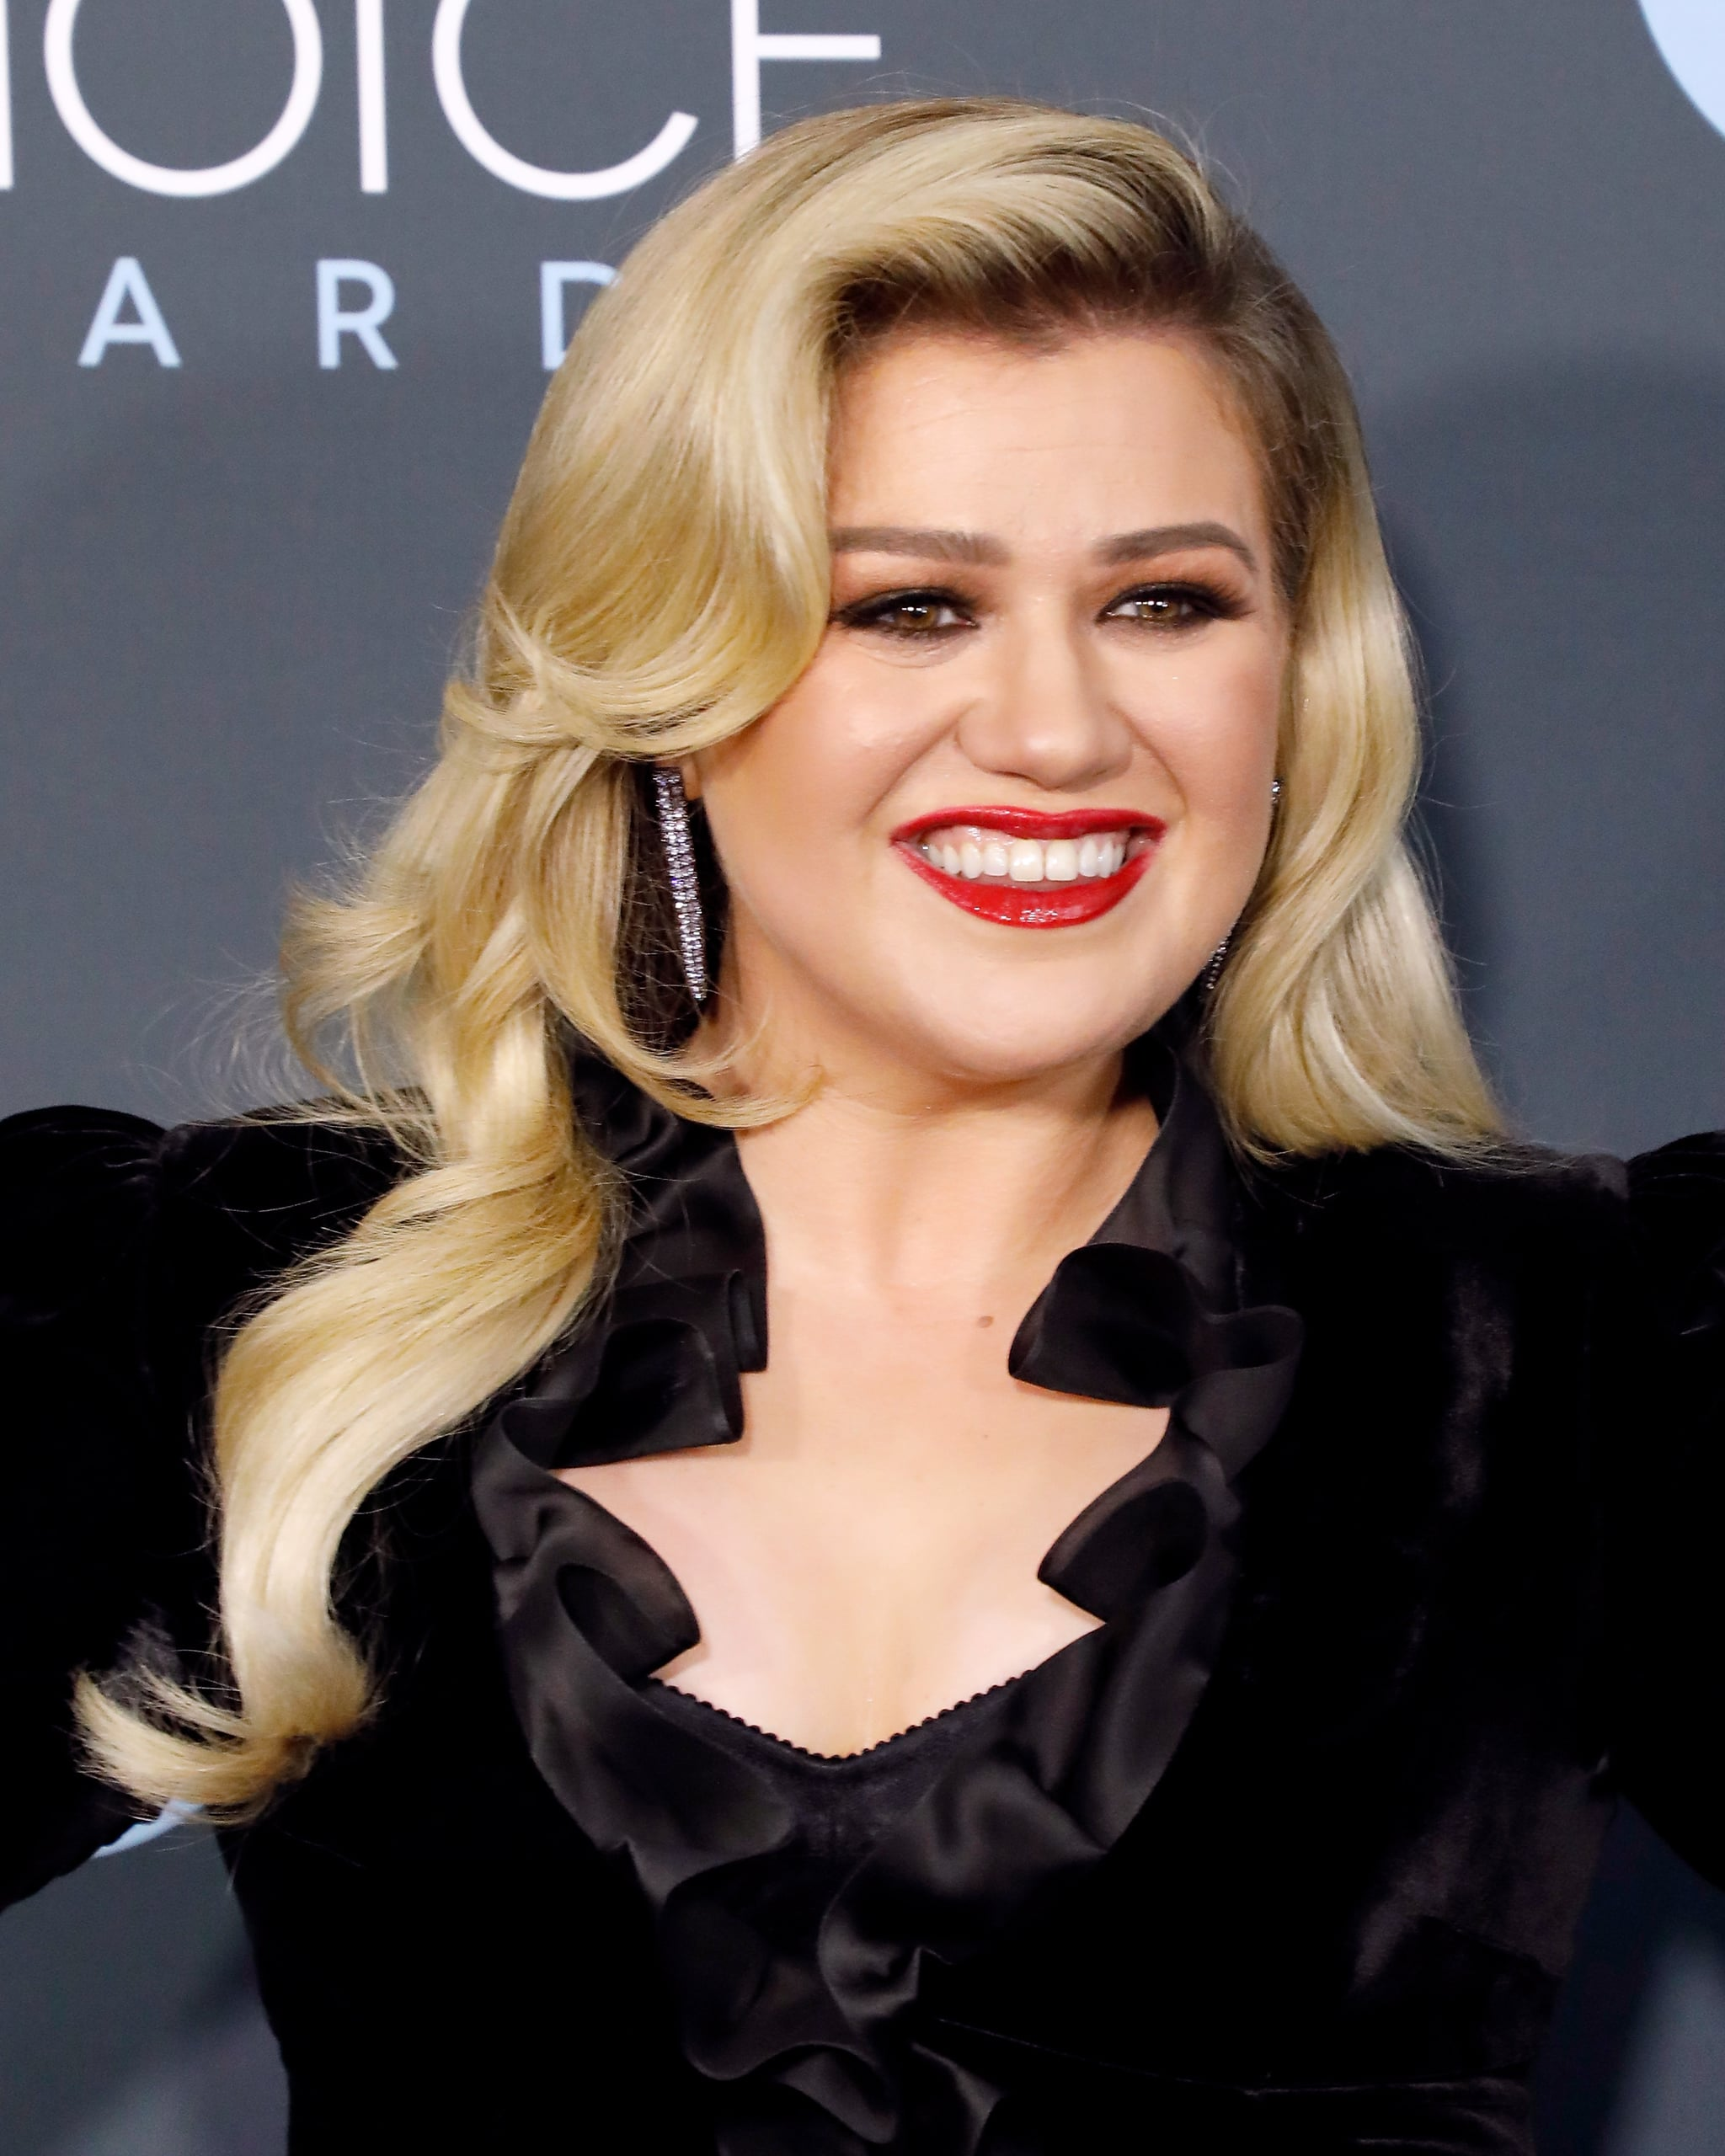 SANTA MONICA, CALIFORNIA - JANUARY 12: Kelly Clarkson attends the 25th Annual Critics' Choice Awards at Barker Hangar on January 12, 2020 in Santa Monica, California. (Photo by Taylor Hill/Getty Images)